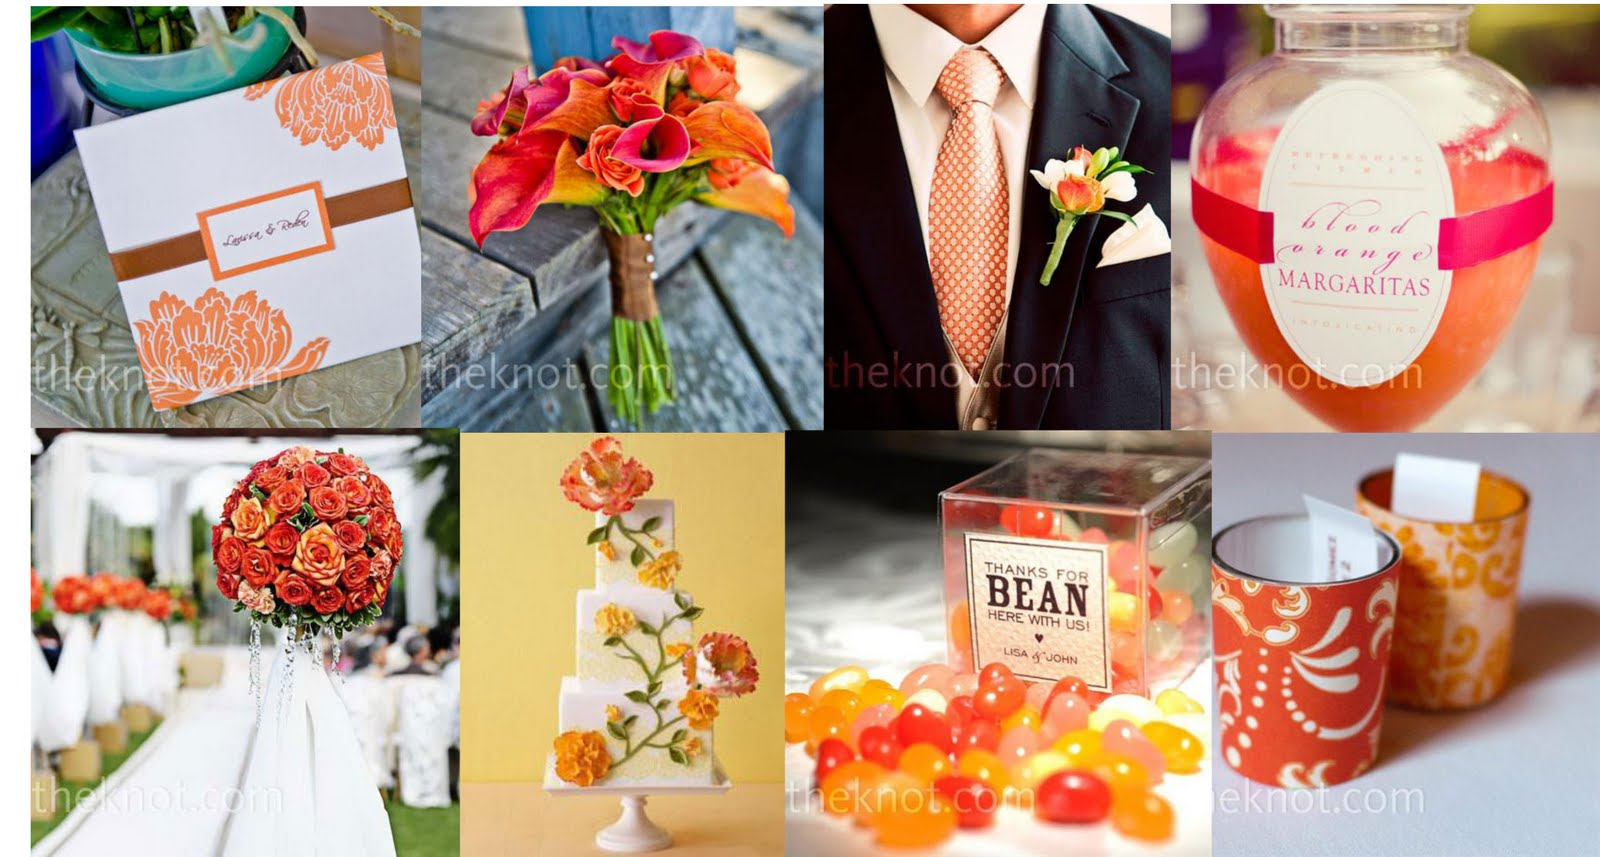 POUR LE CHOUCHOU: (SUMMER WEDDING COLORS)